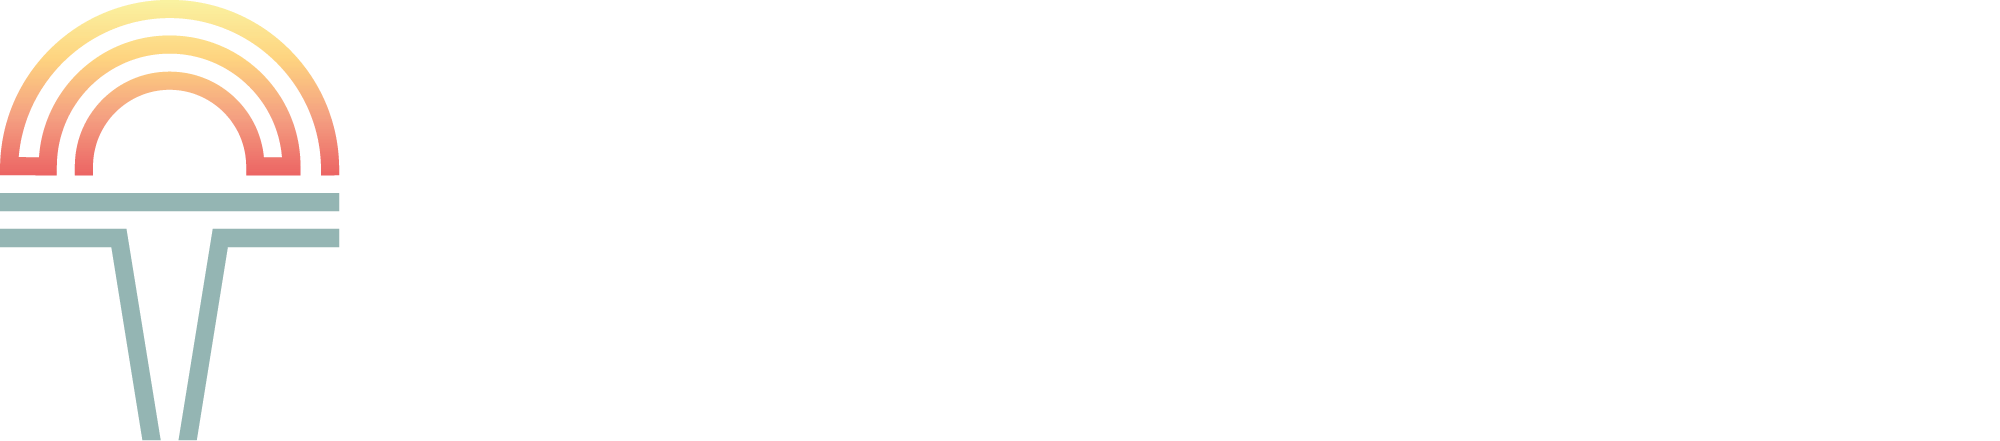 TRAVEL CONTENT WRITING